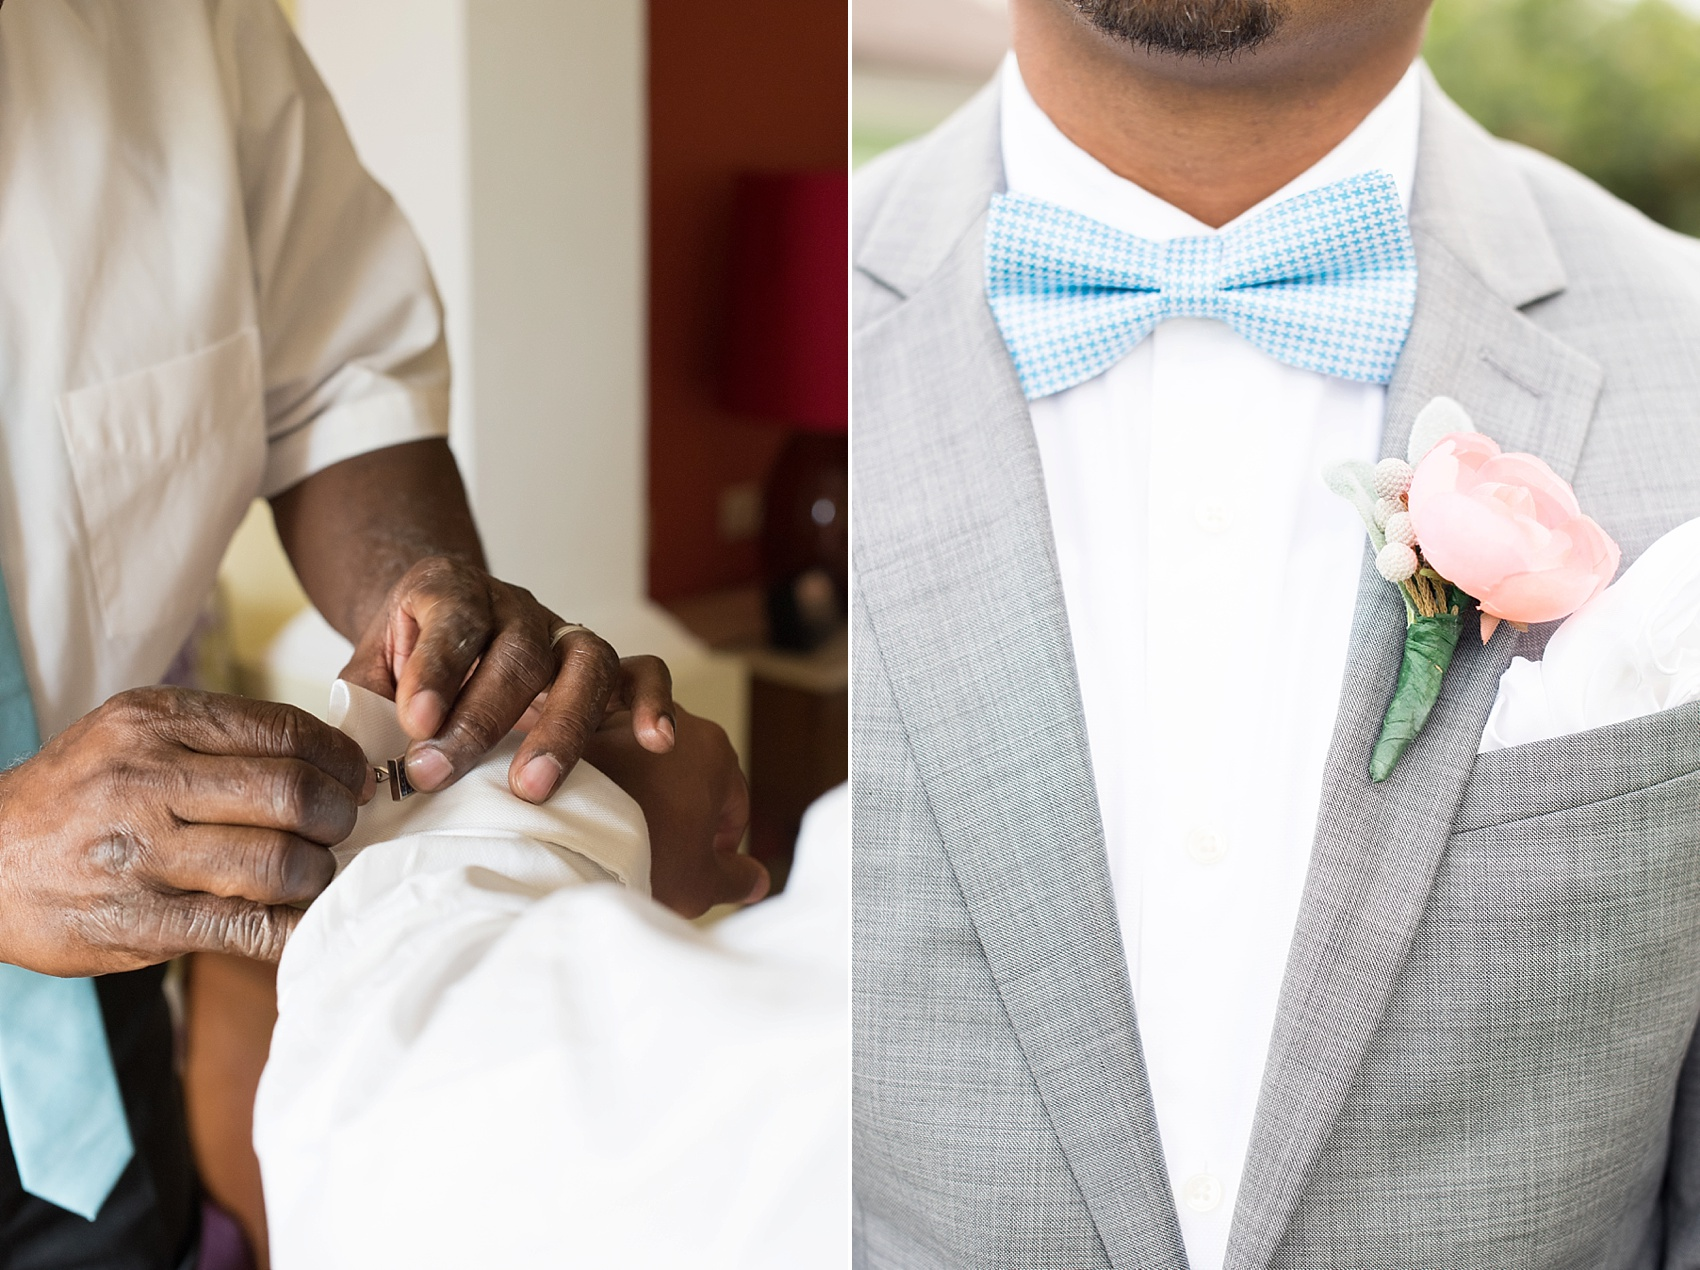 Iberostar Jamaica wedding photos, groom's blue and white checkered pattern bow tie. Images by Mikkel Paige Photography.